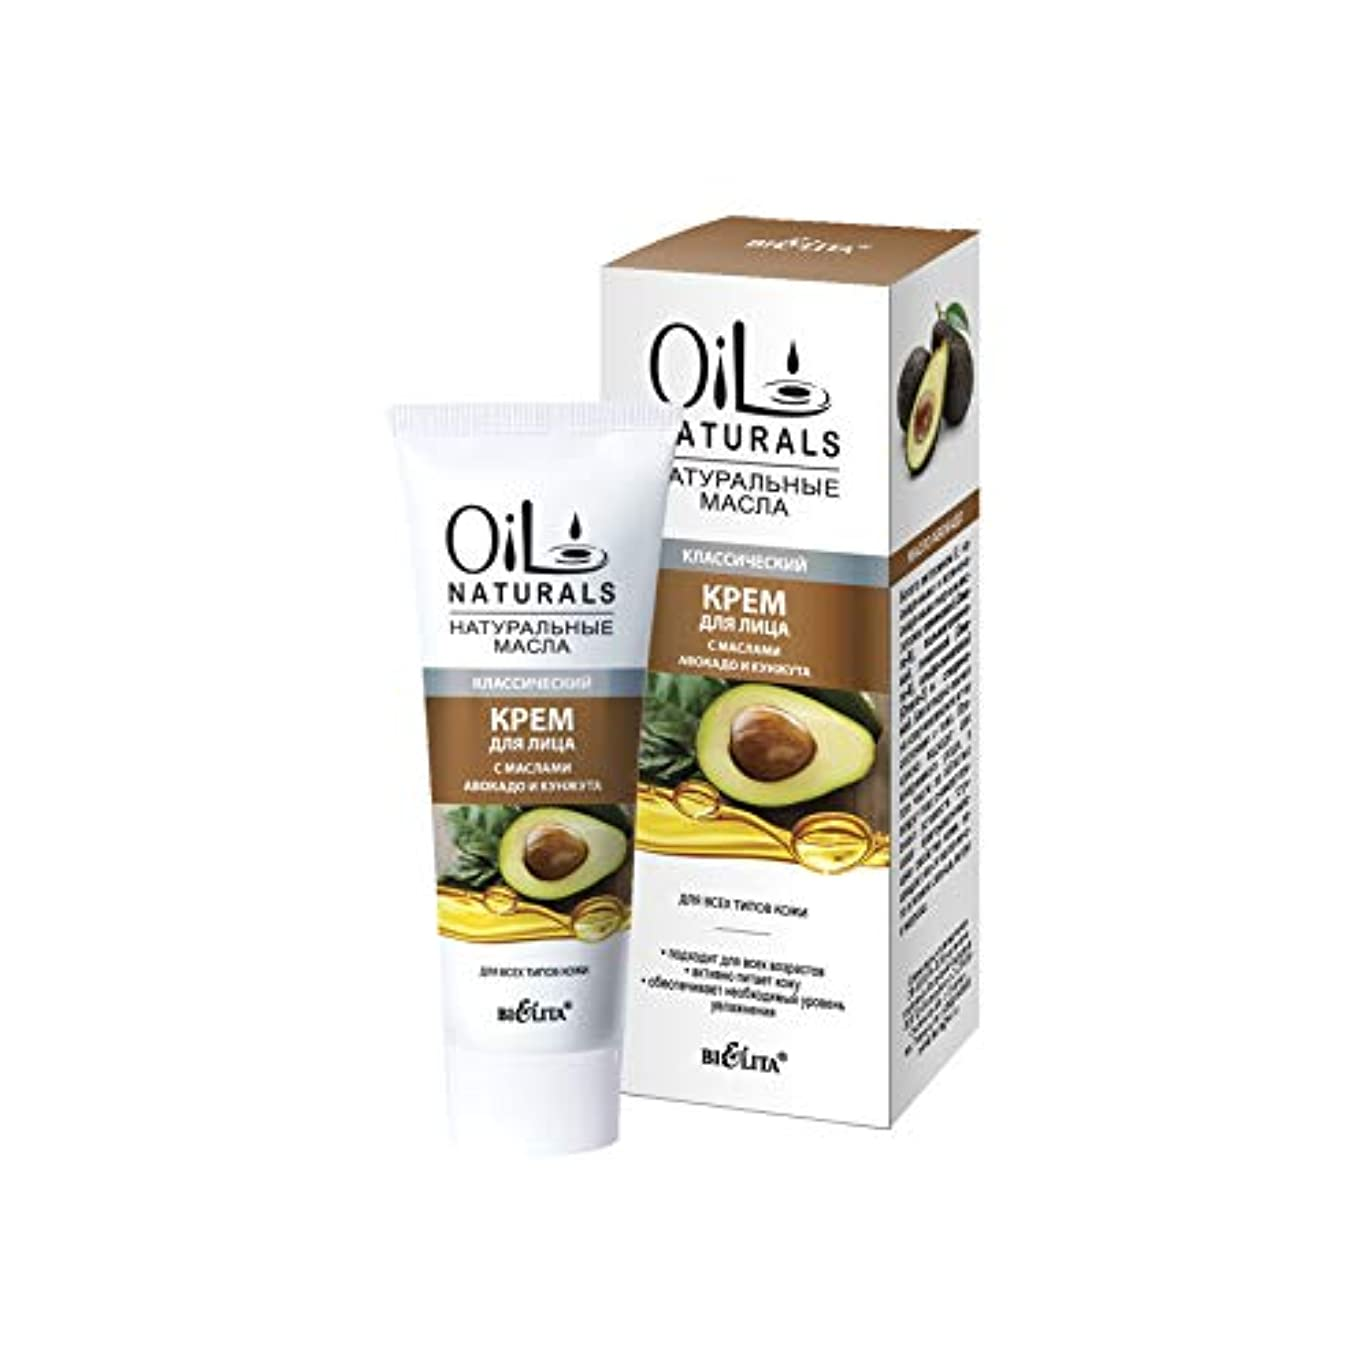 会計士増強現れるBielita & Vitex |Oil Naturals Line | Classic Moisturizing Face Cream, for All Skin Types, 50 ml | Avocado Oil,...